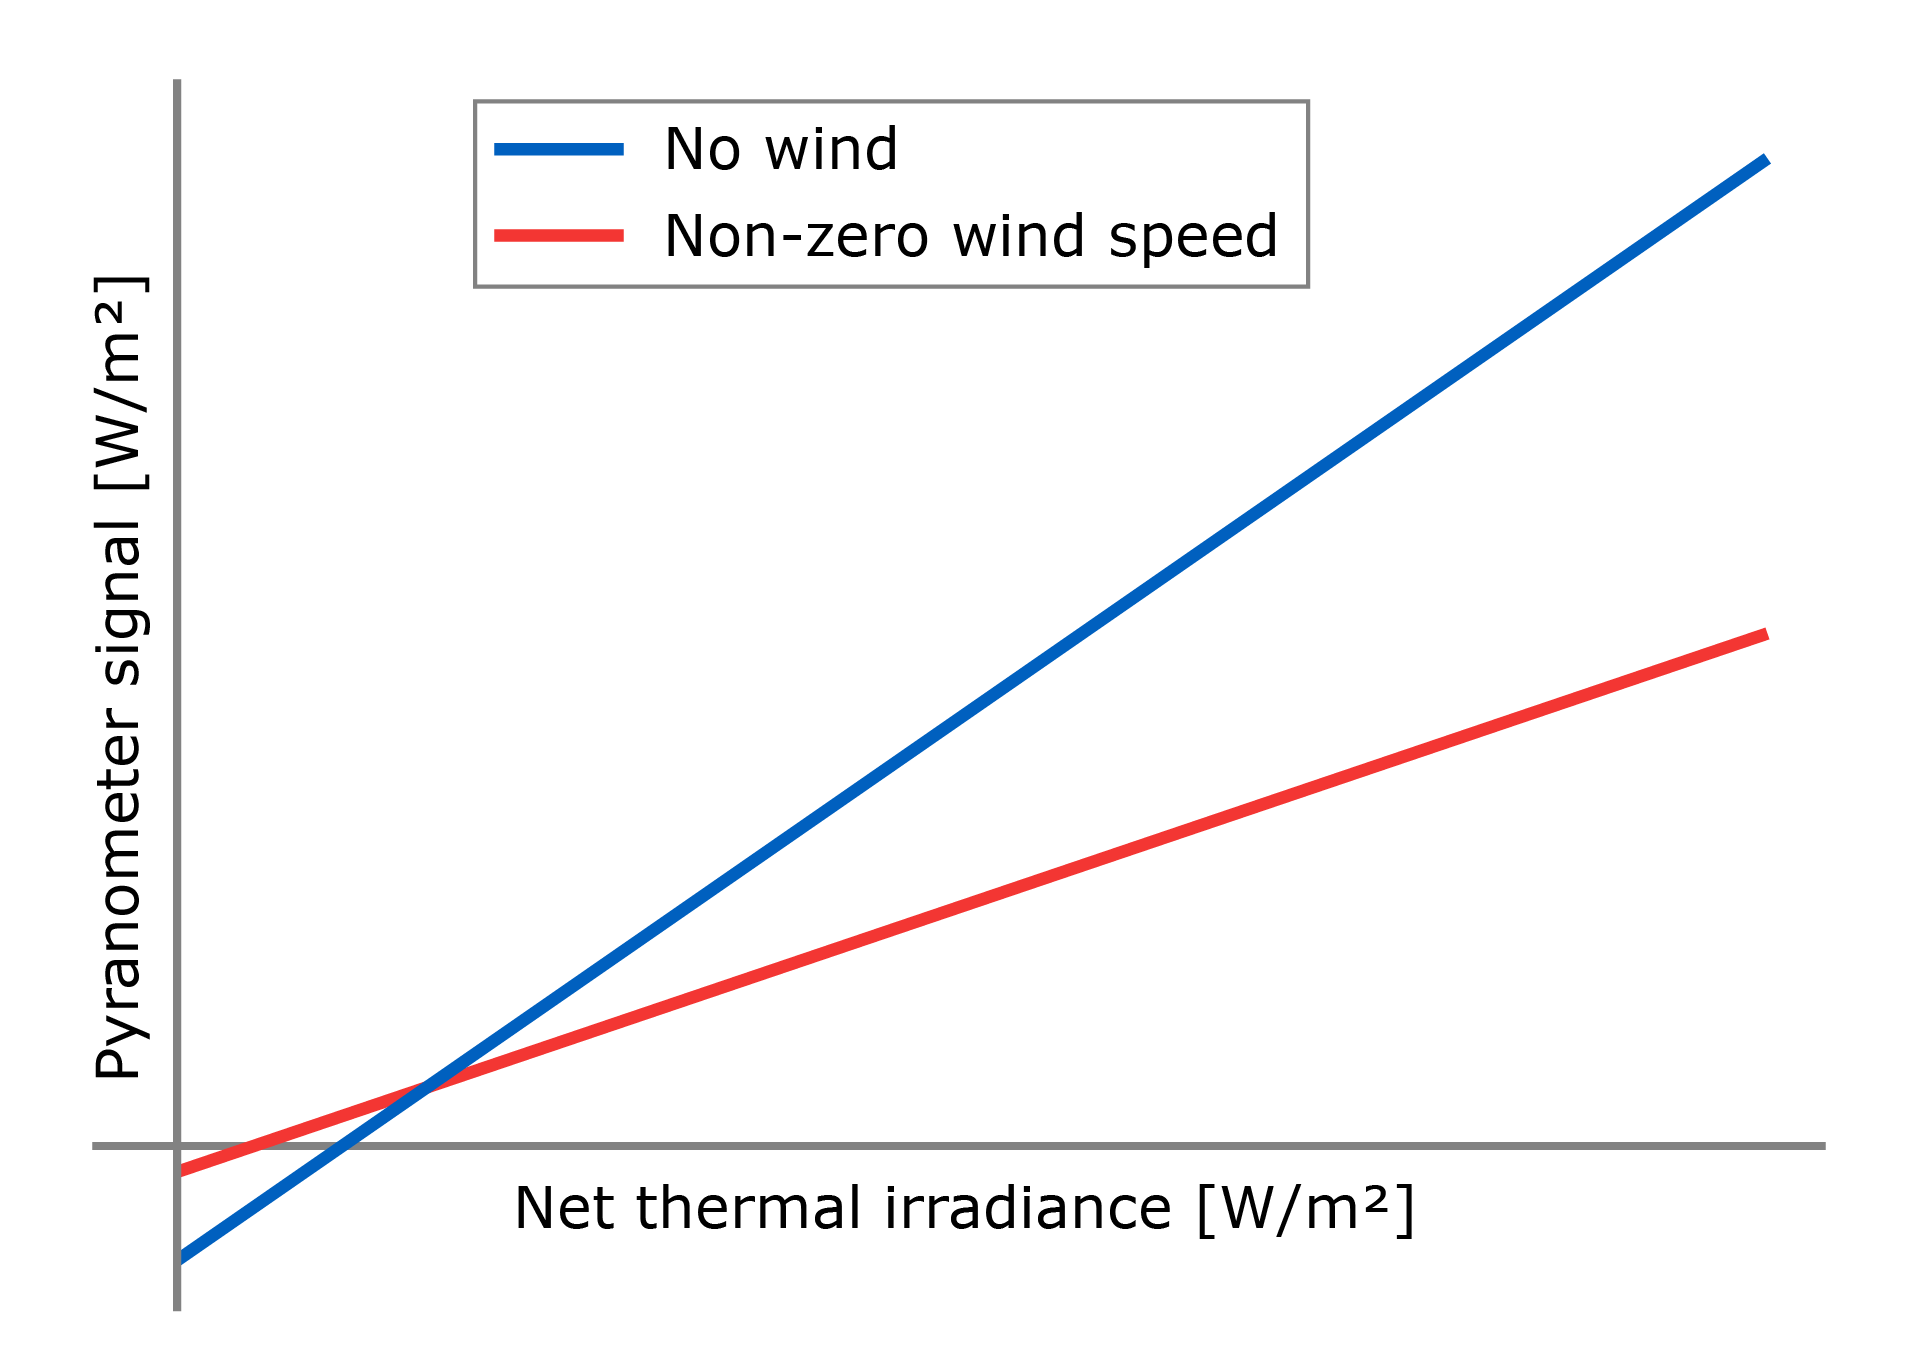 a sketch of the pyranometer response to thermal radiation. The slope is the sensitivity to thermal radiation, any offset is attributed to other factors. Note that the slope will also depend on other factors such as wind speed.